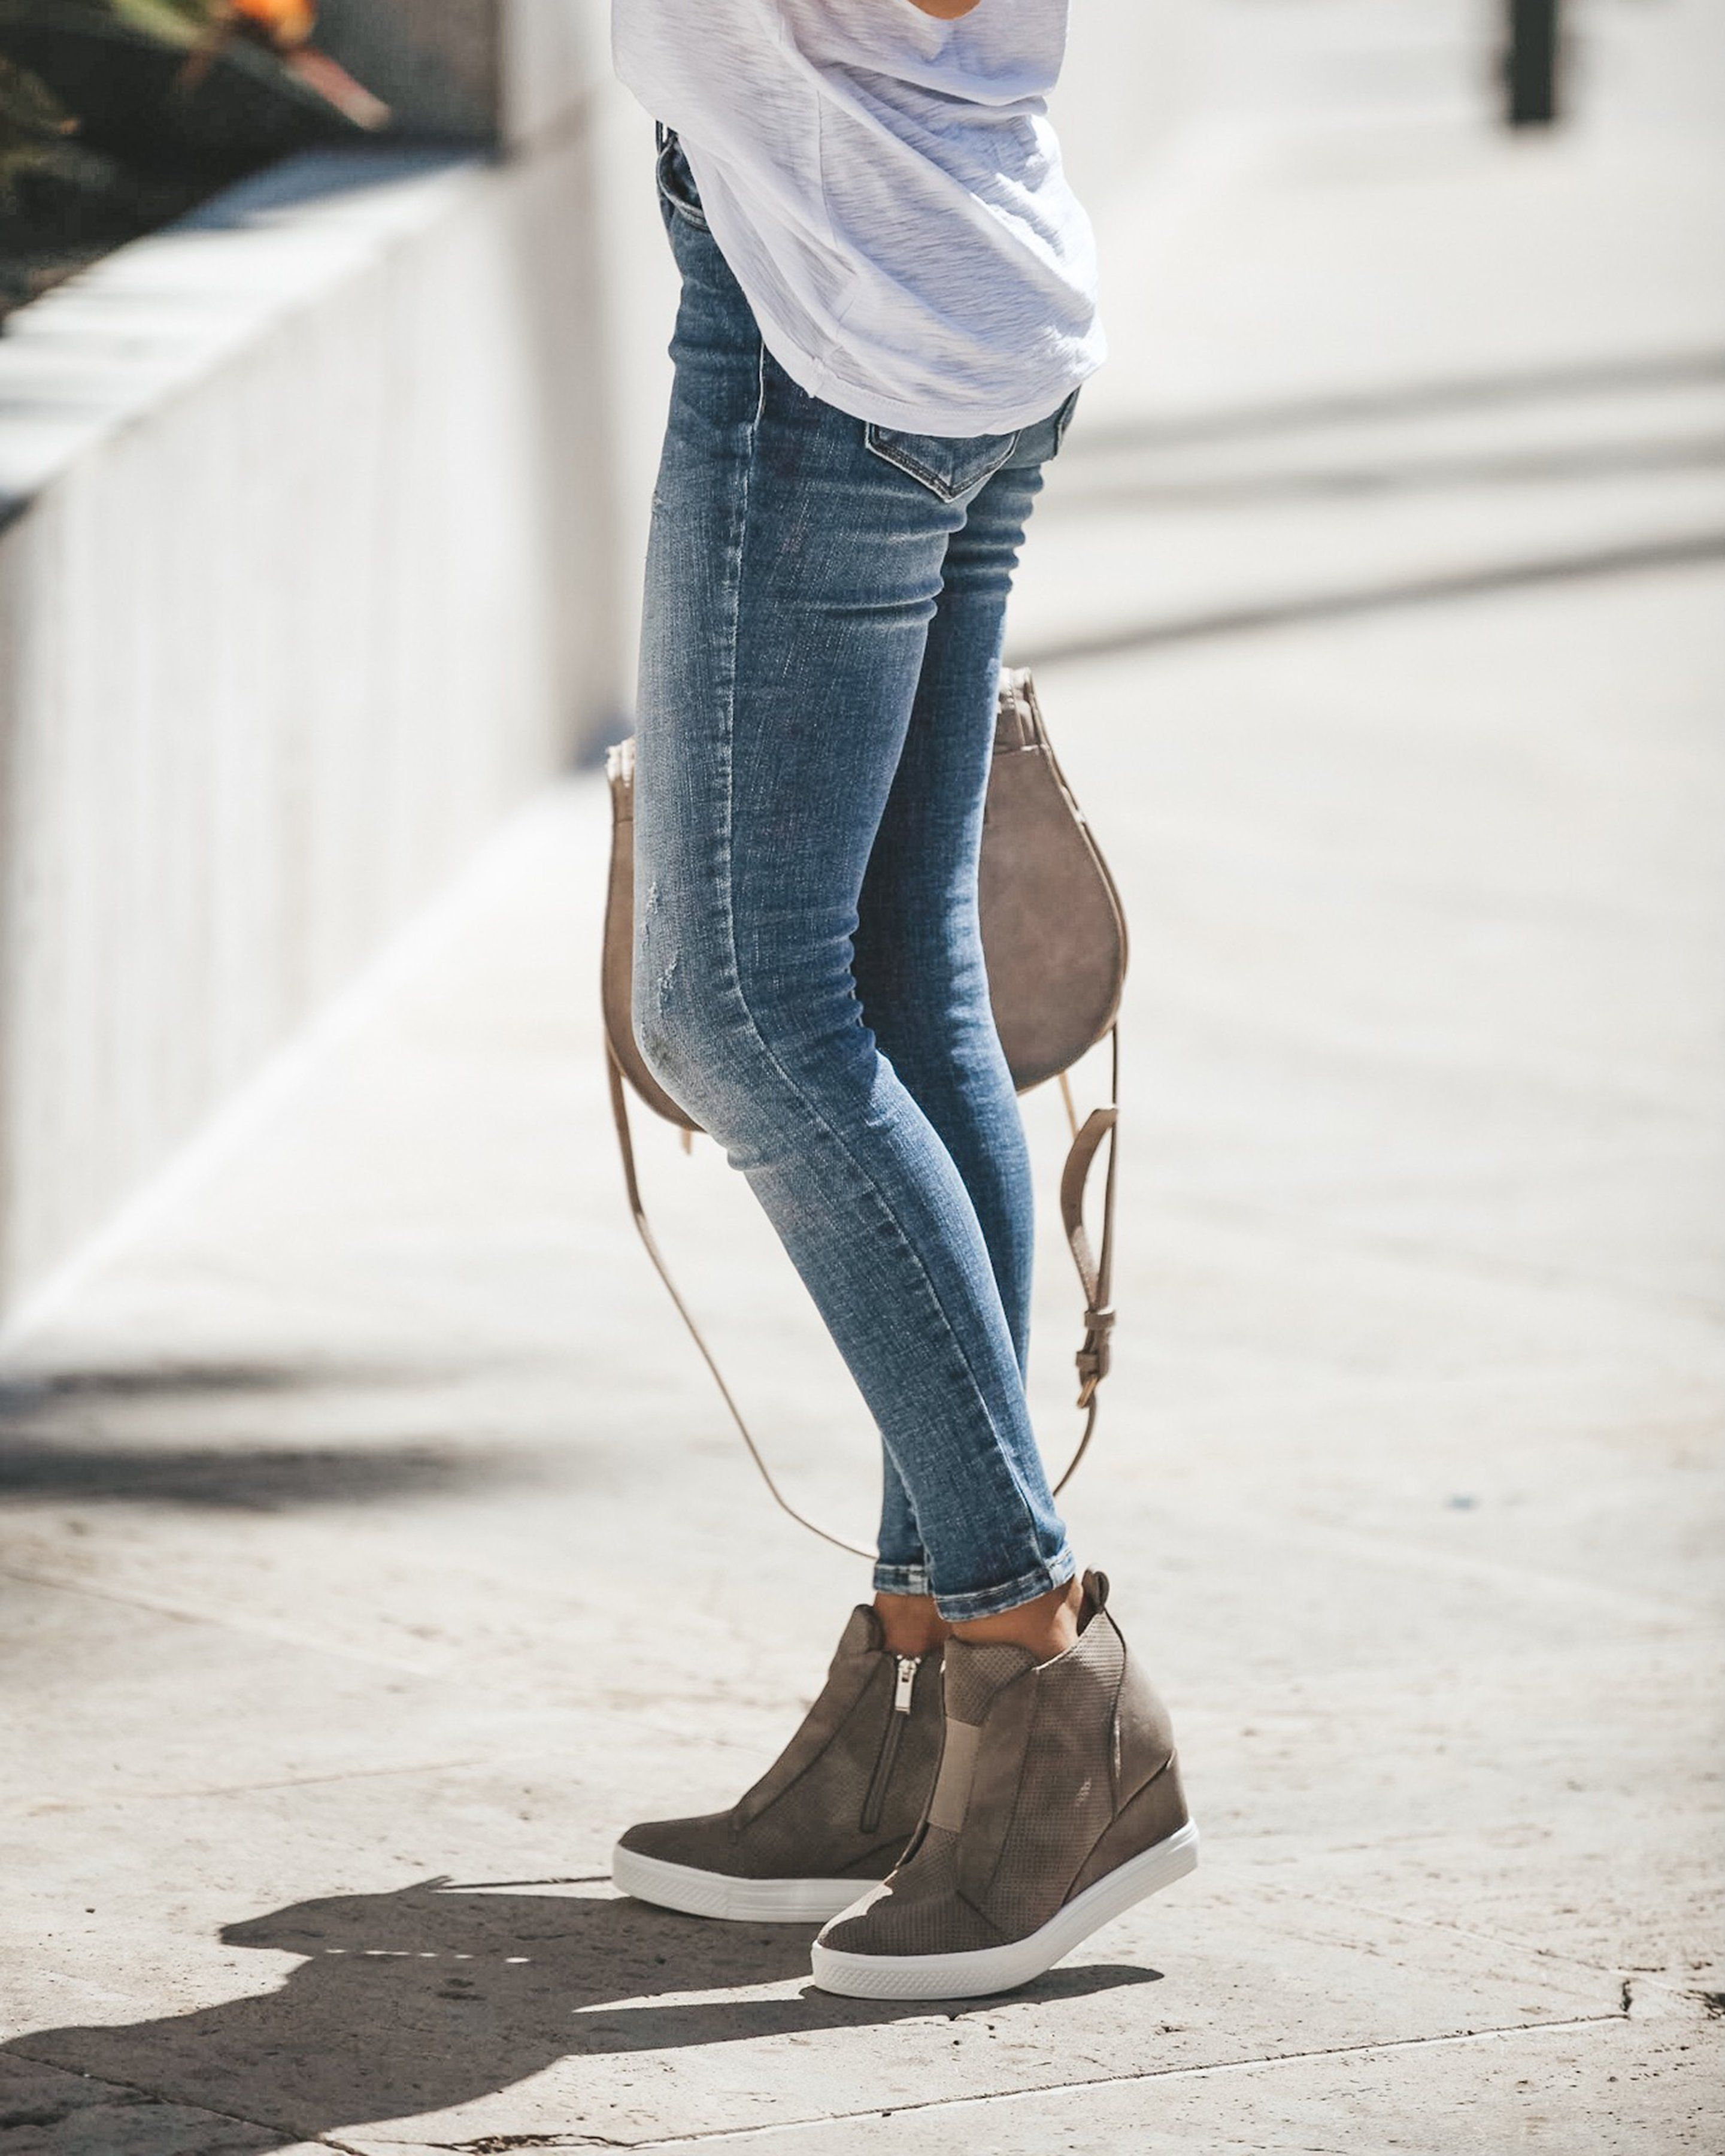 e767f6e884aa PREORDER - New In Town Faux Suede Wedge Sneaker - Taupe